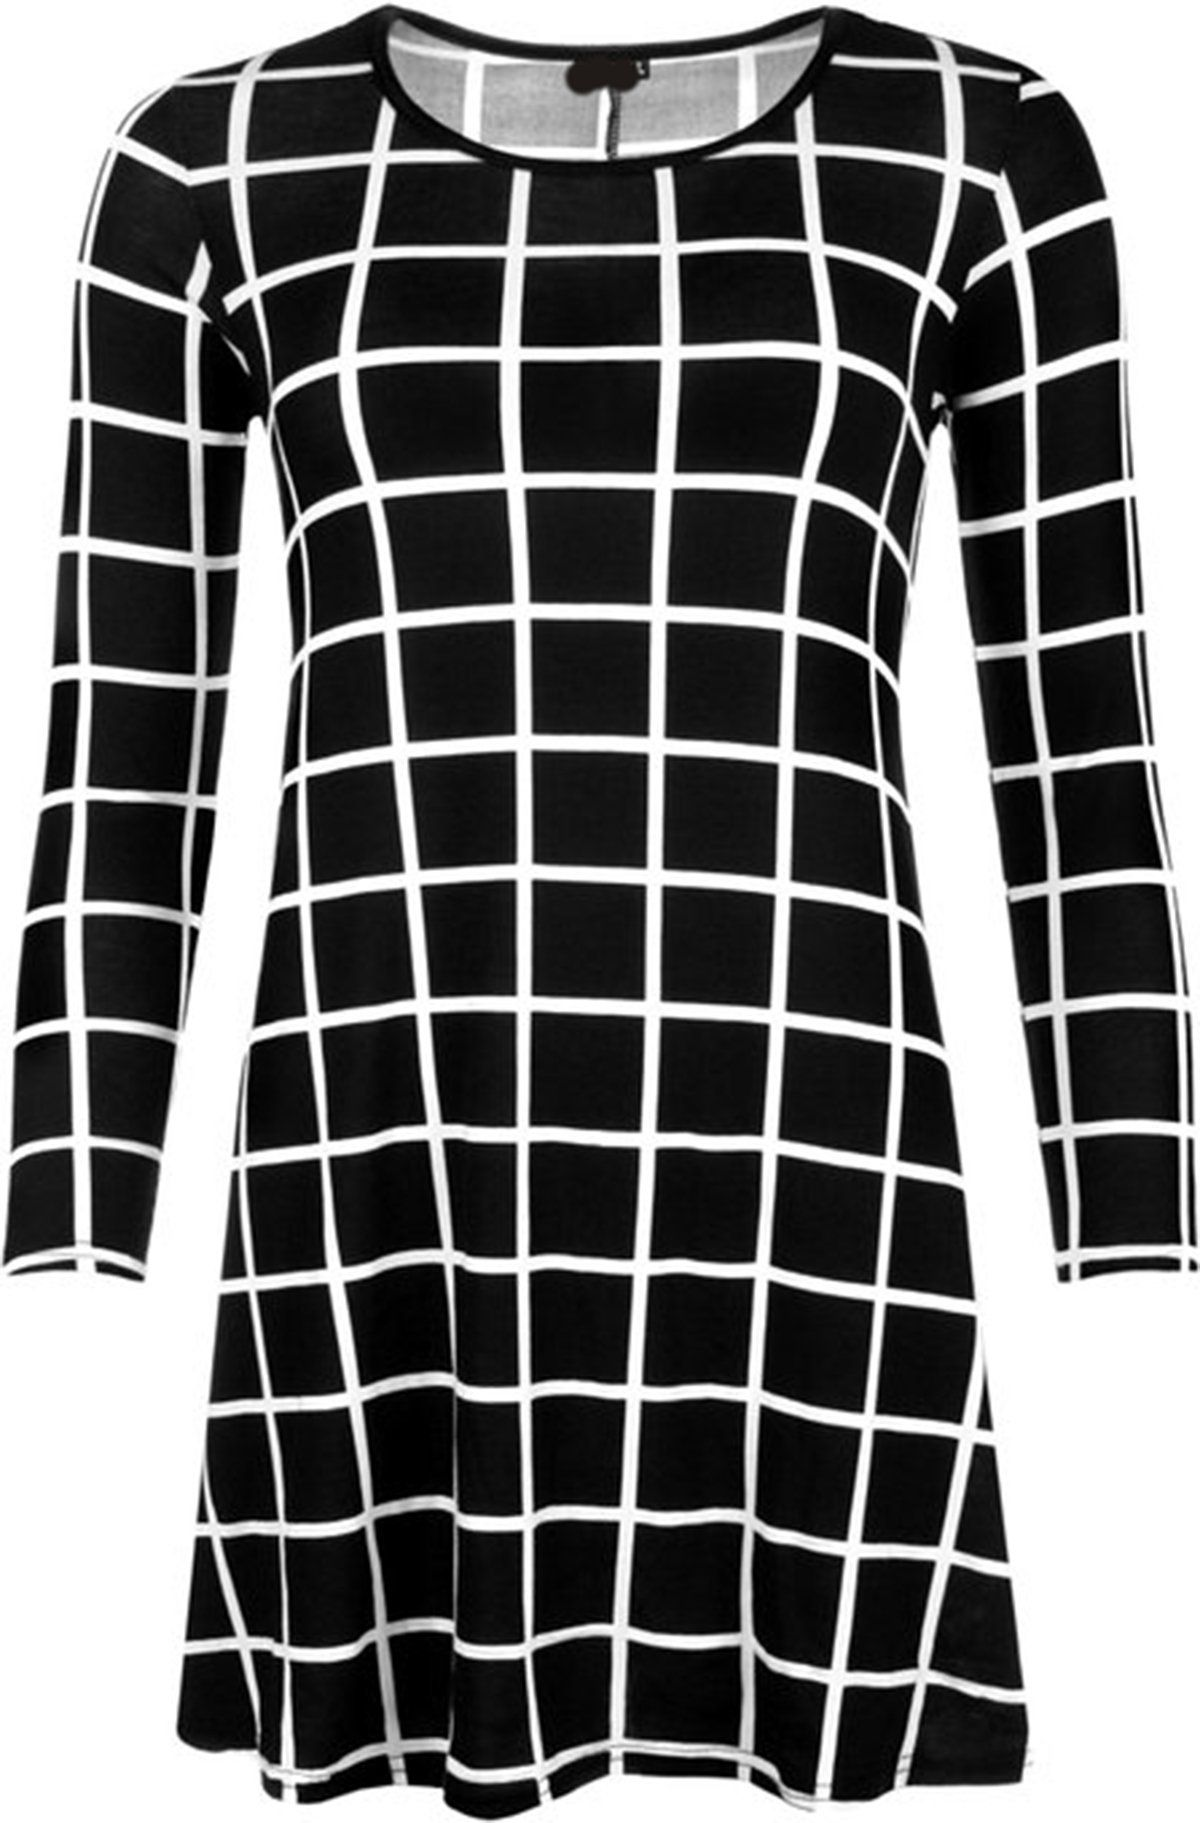 9d5cbd3f87a Girls Walk Women Grid Check Print Long Sleeve Swing Flared Top Dress Plus  Size --